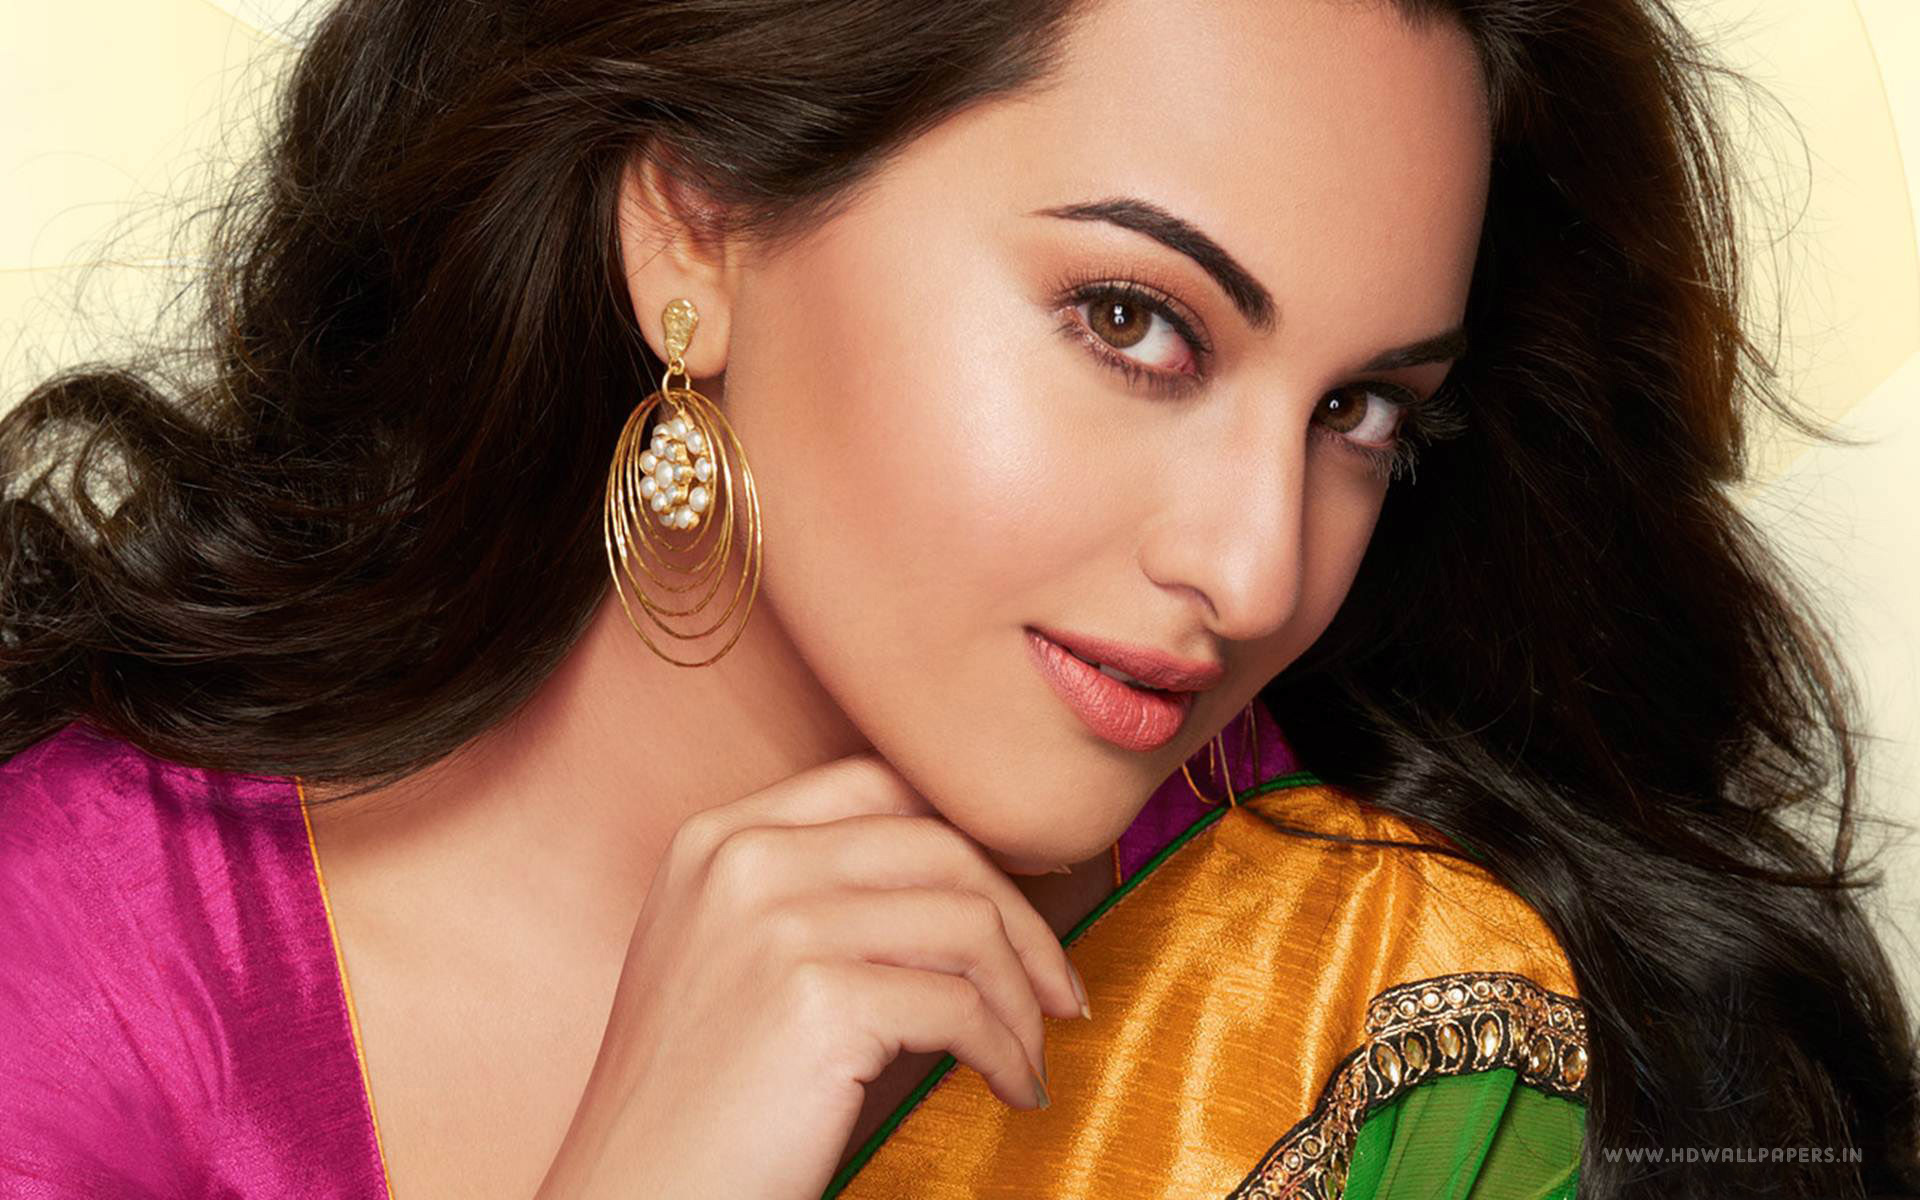 sonakshi sinha wallpapers, pictures, images